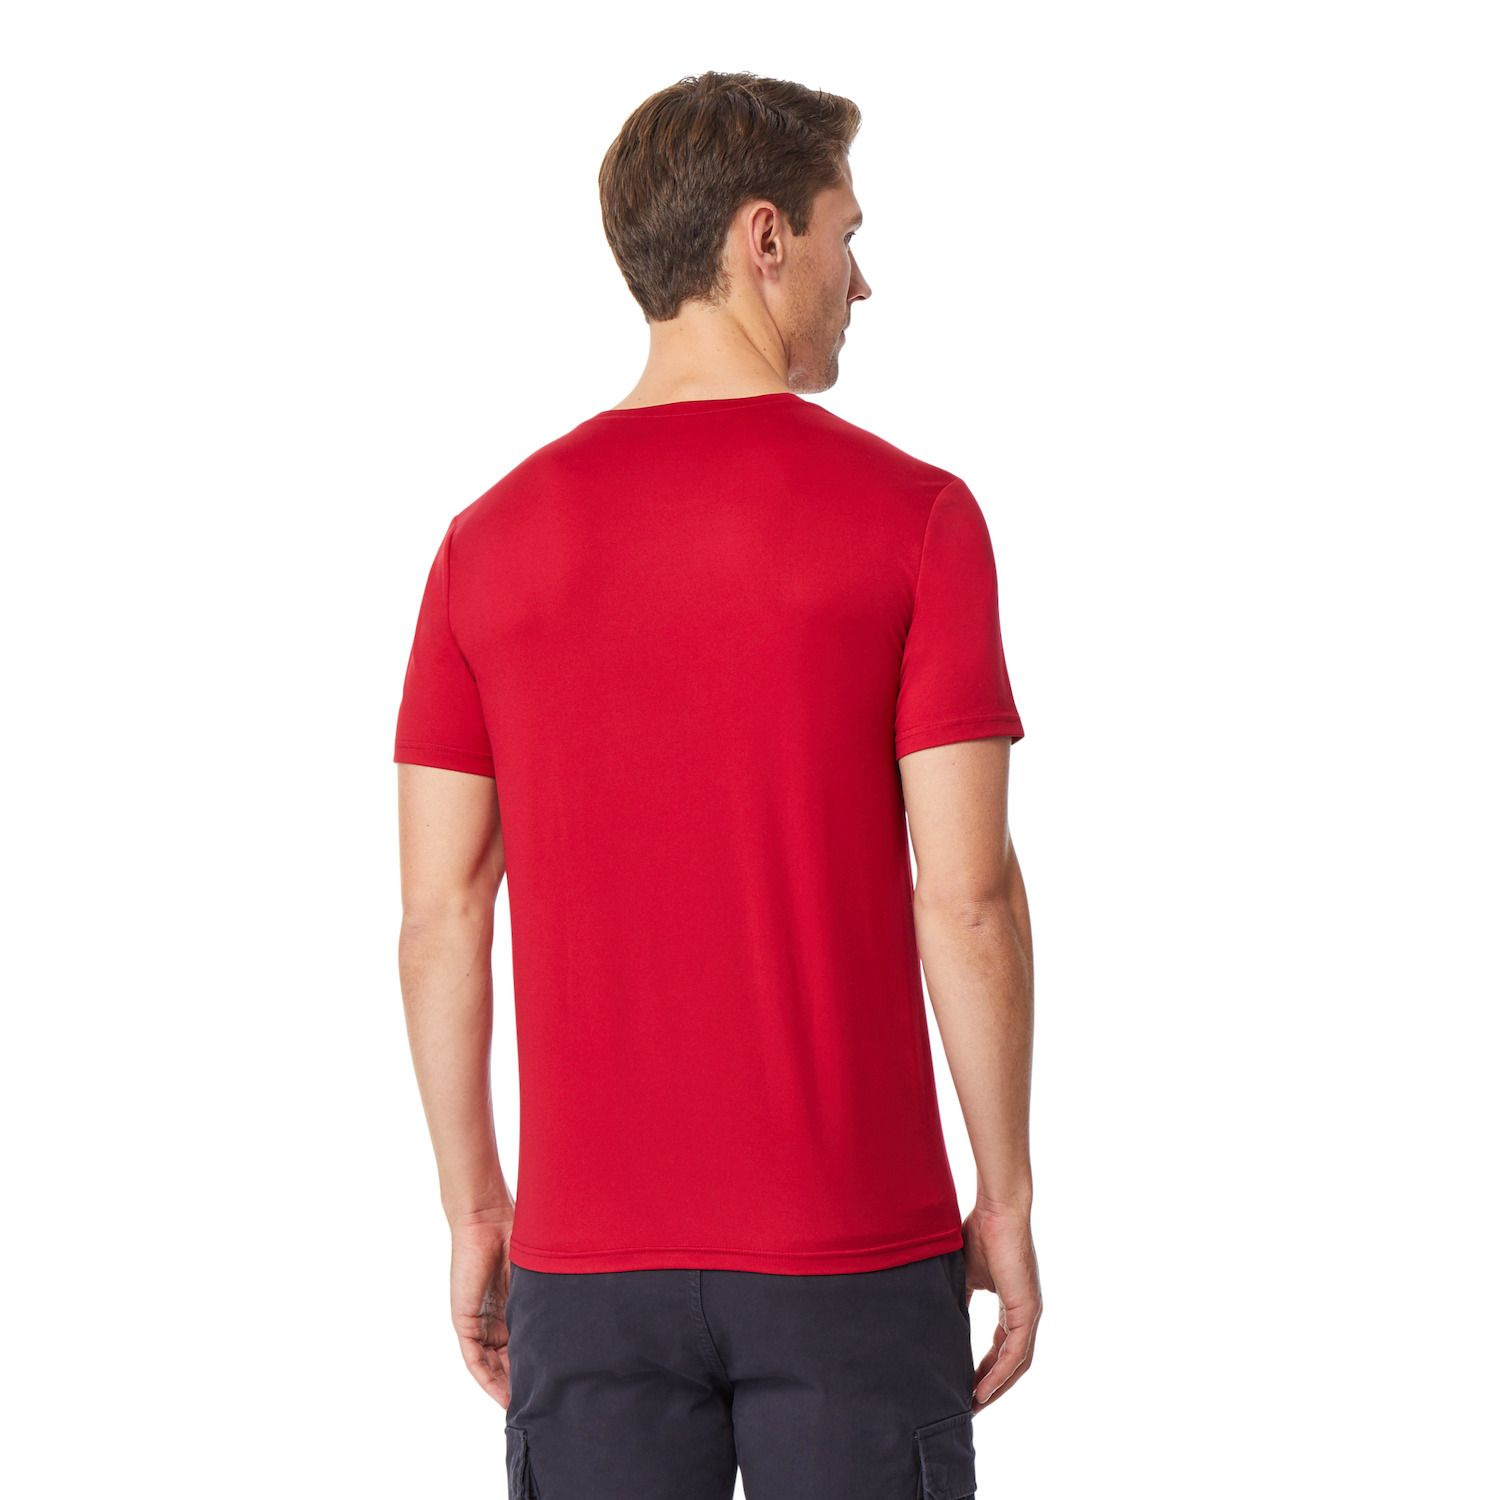 11d21e0d22 CoolKeep Clothing | Kohl's